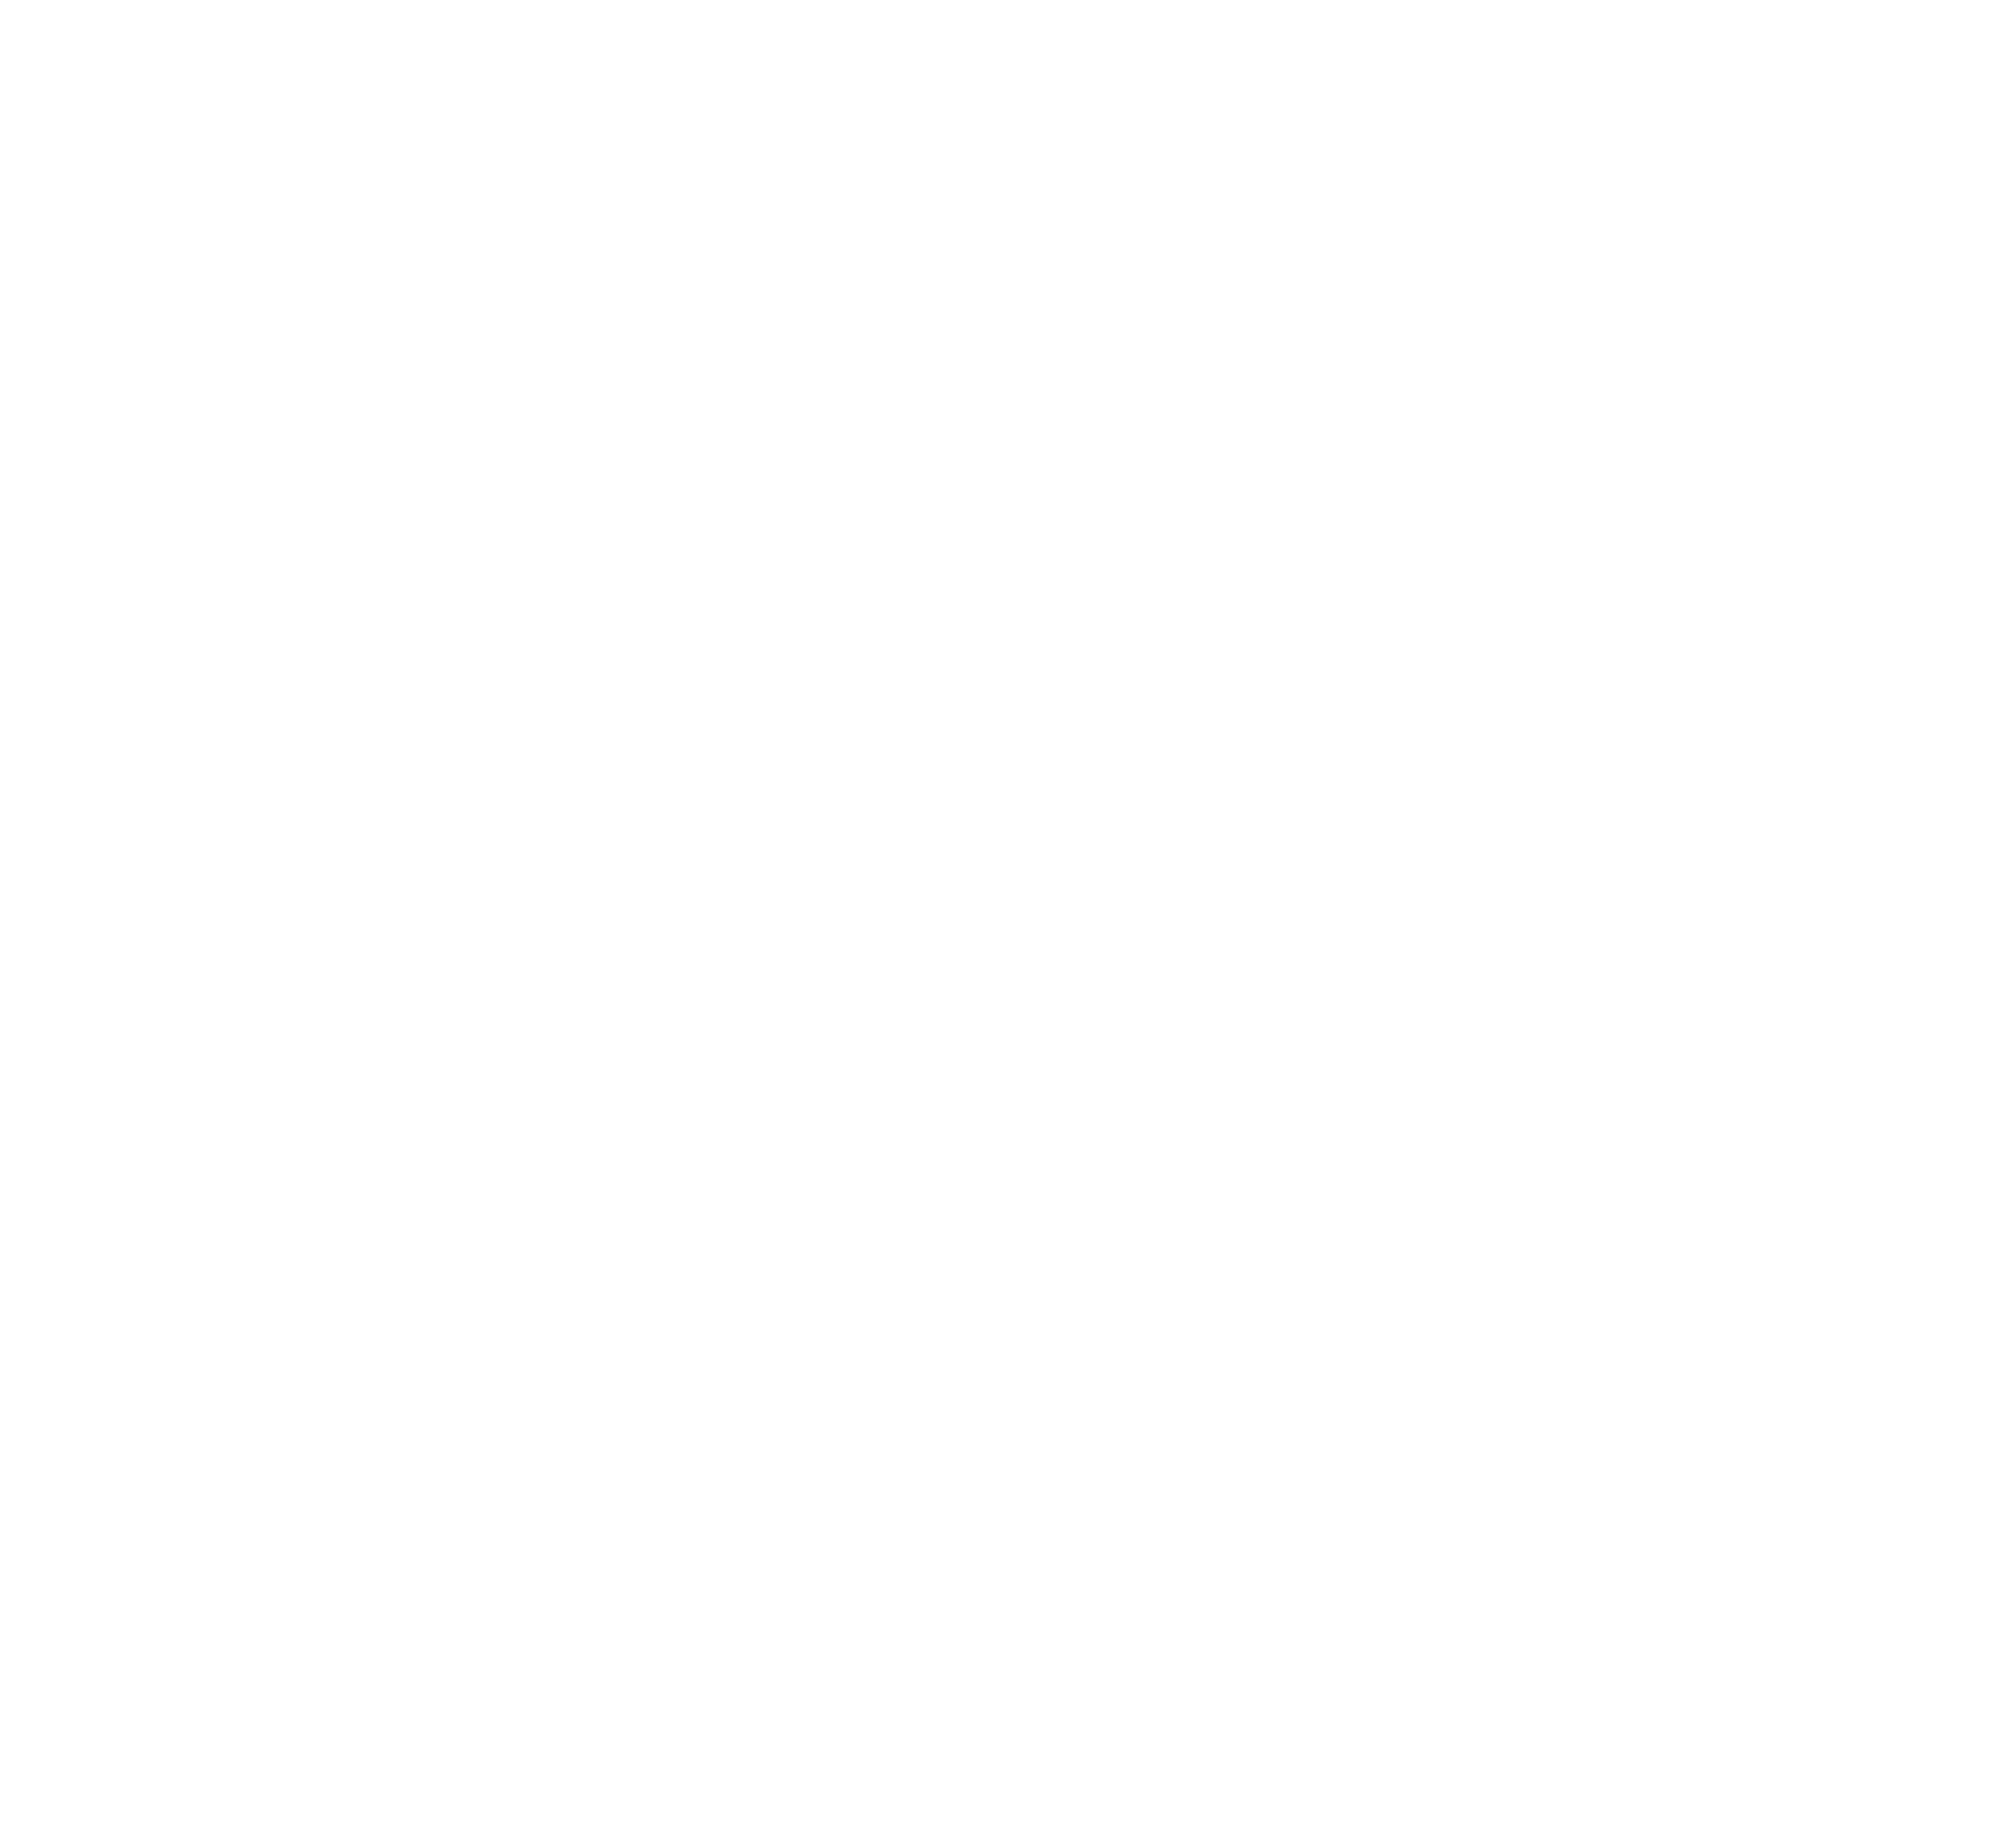 White cupid png. Silhouette transparent image gallery